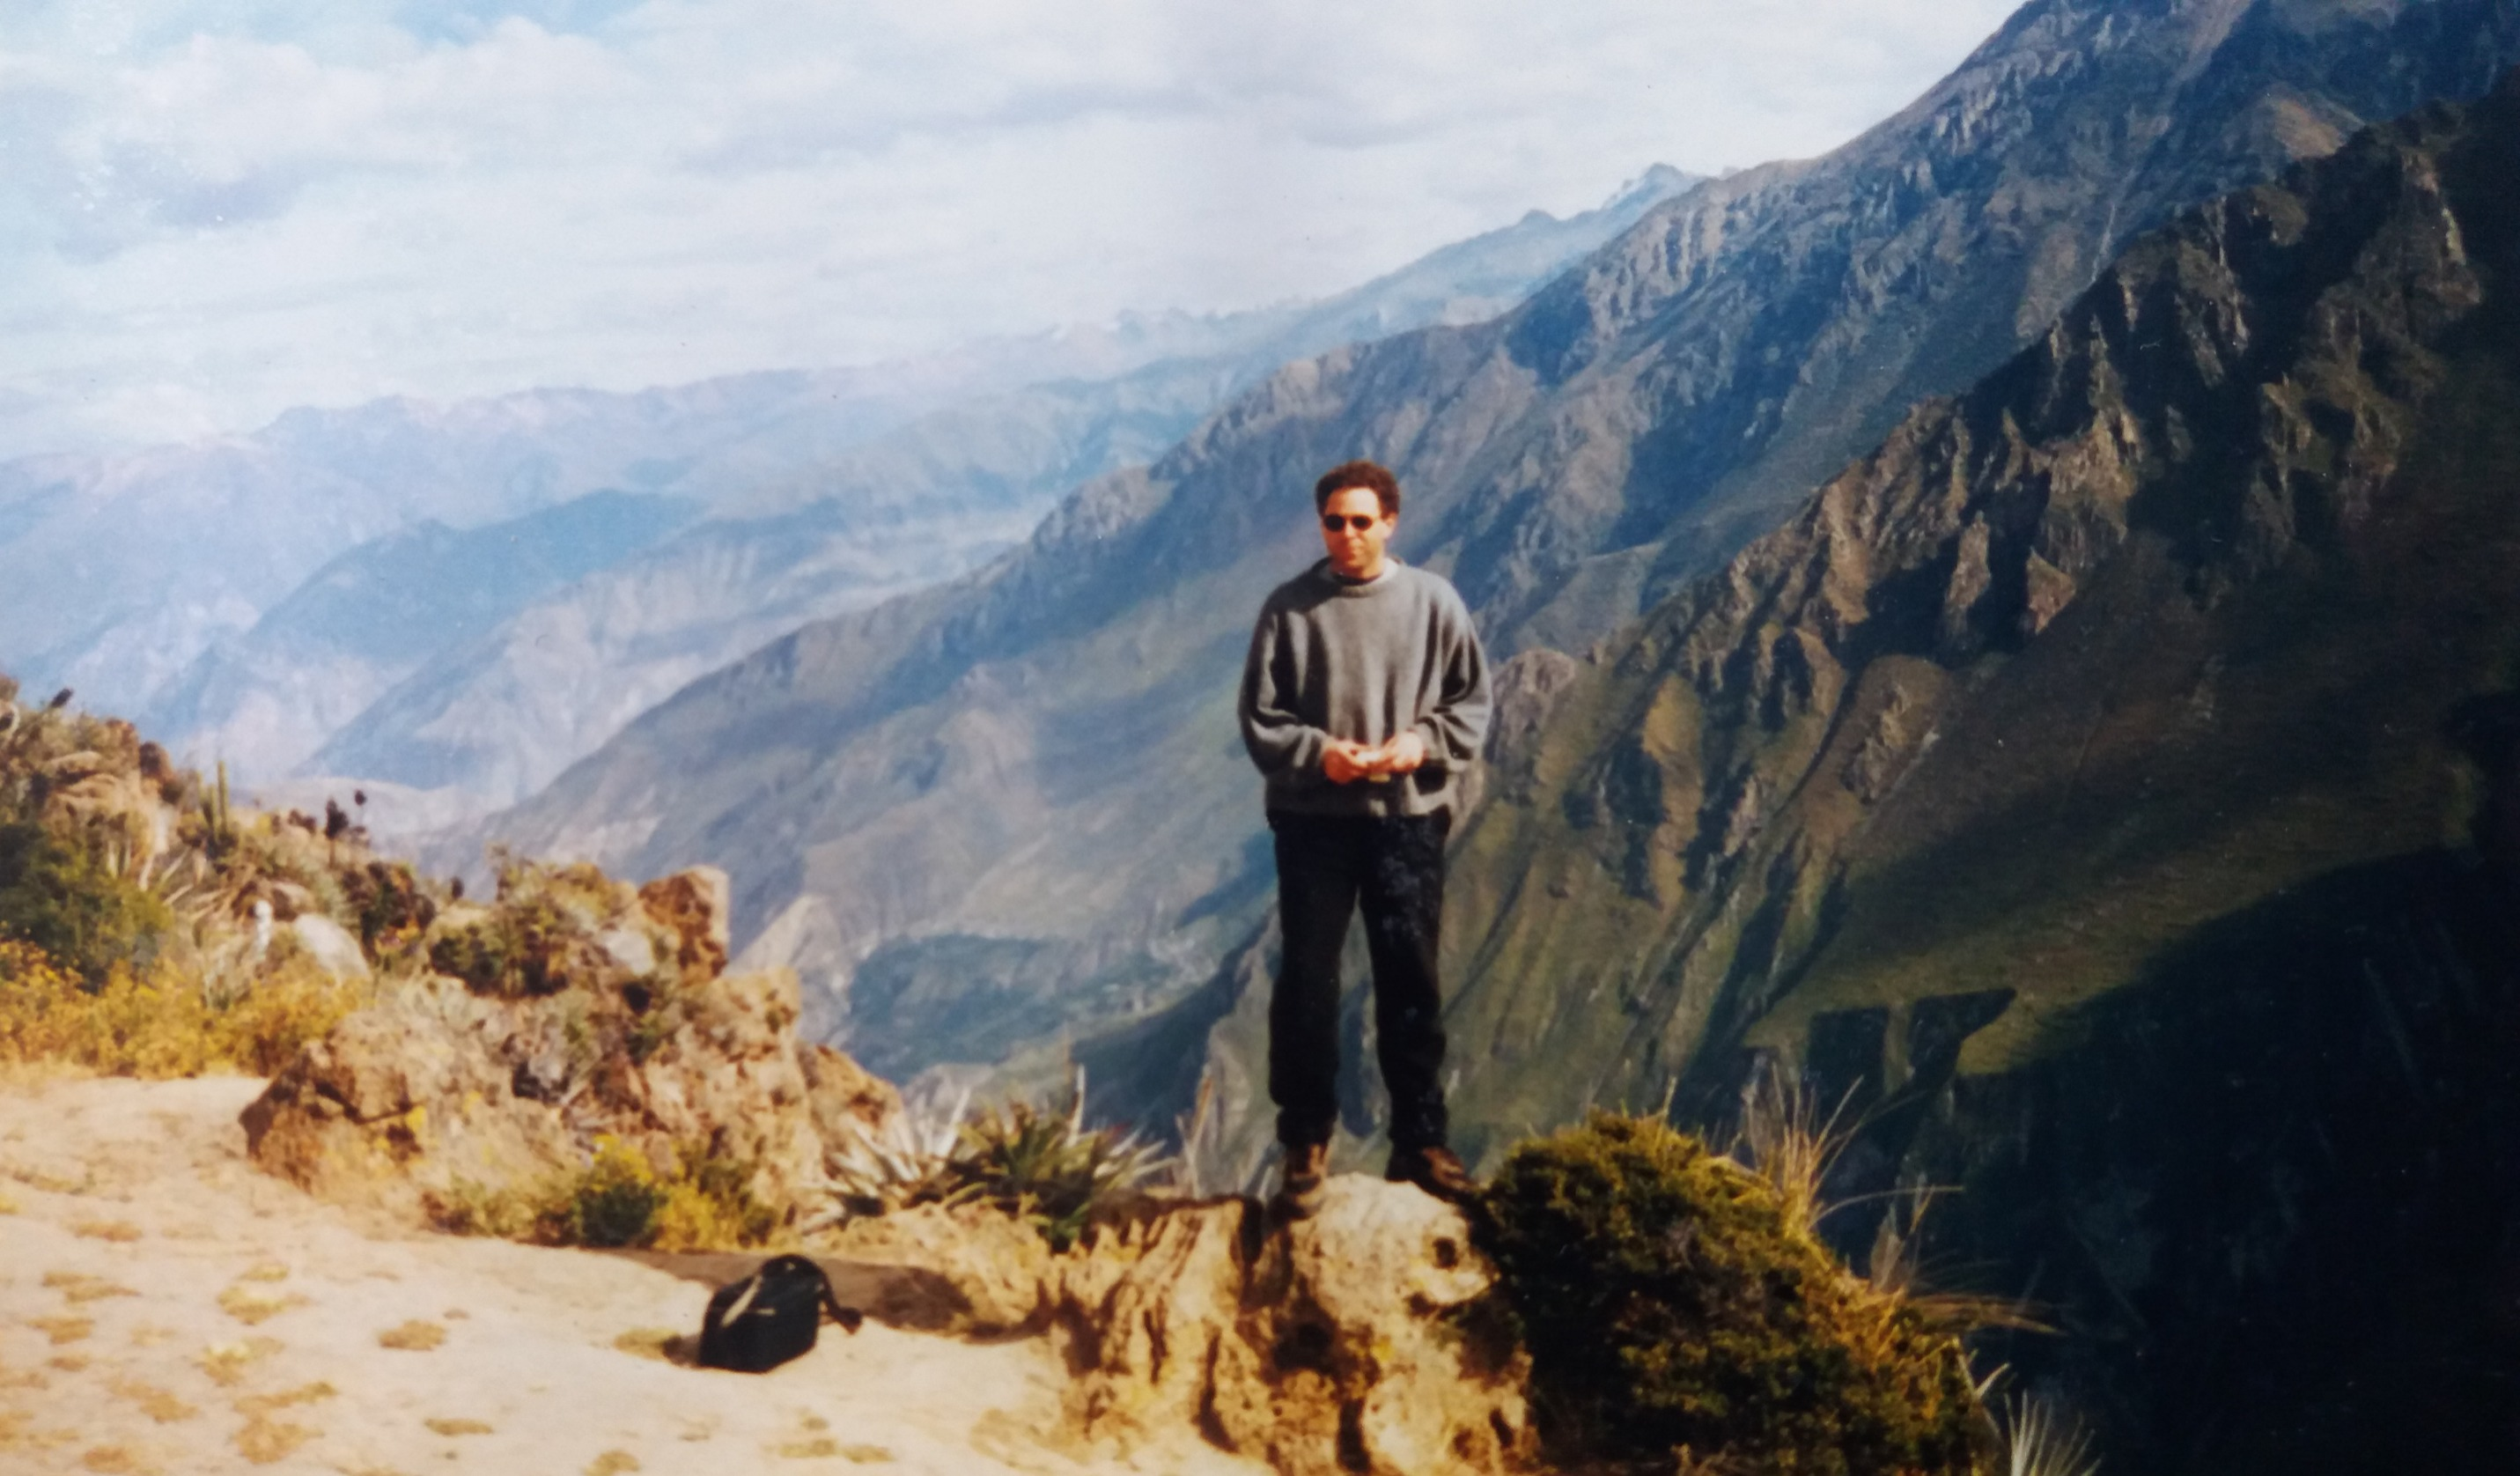 Peru diary - Day 9 - Colca Canyon